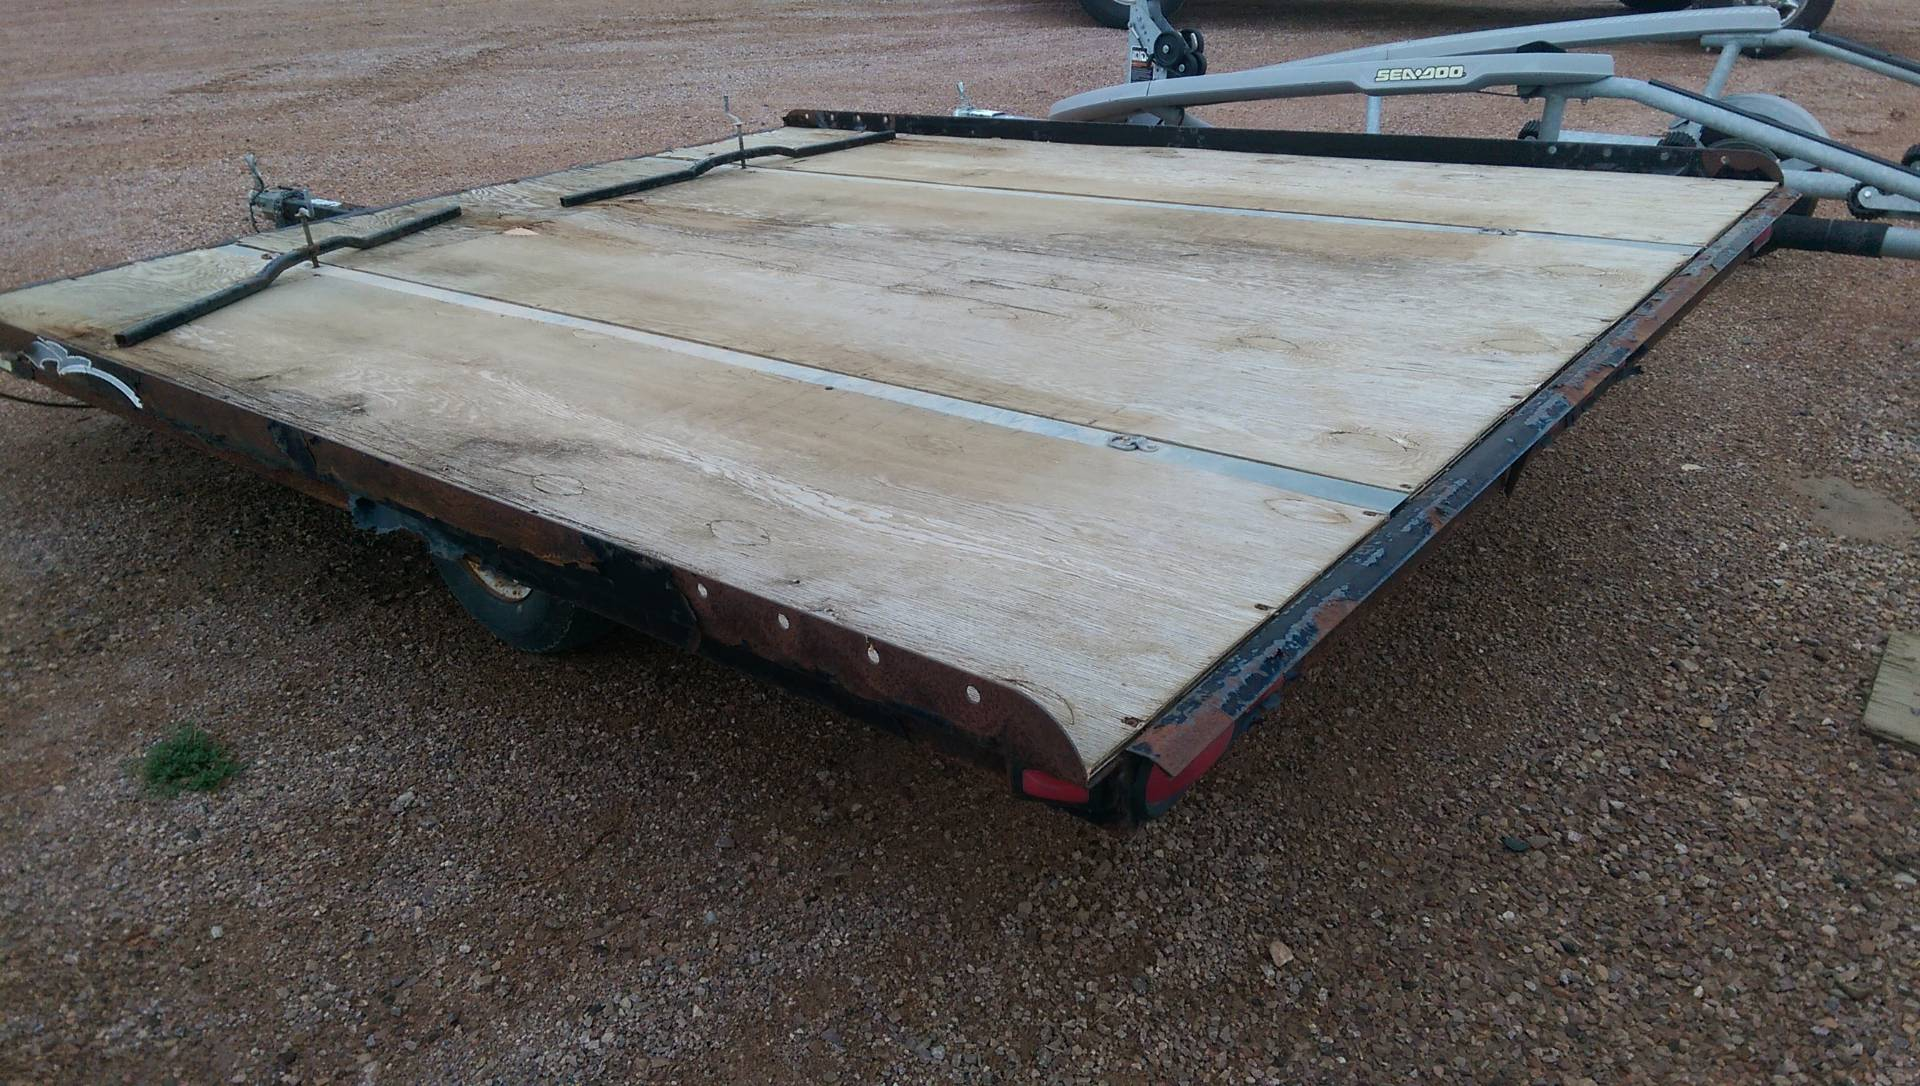 1999 Yacht Club SM10 2-PLACE SLED in Rapid City, South Dakota